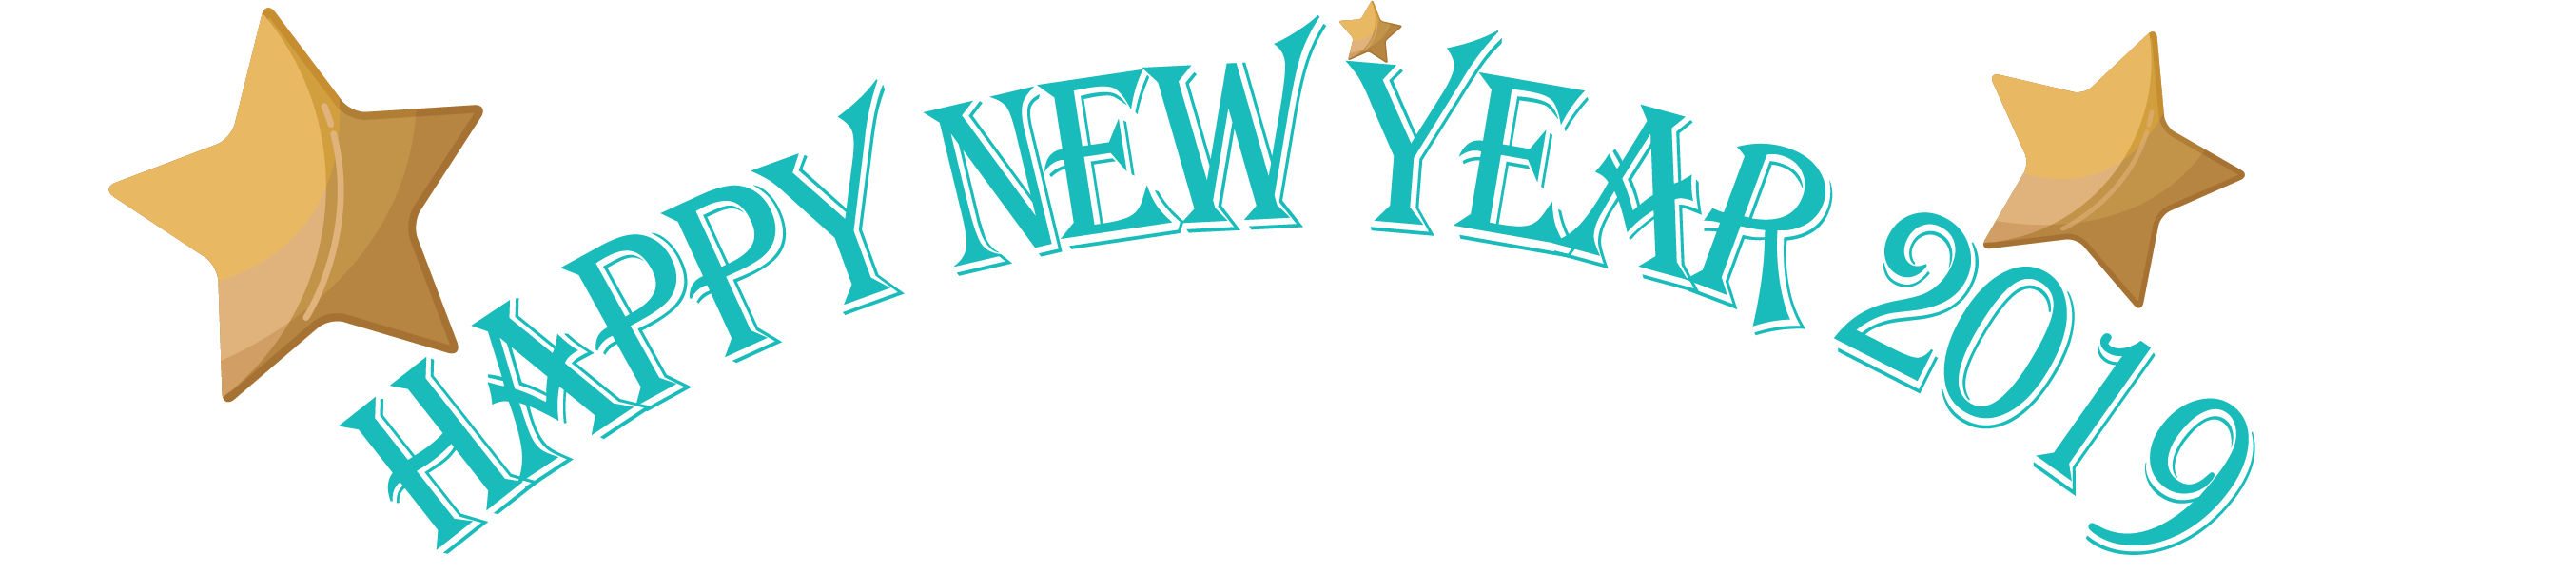 New year banner png. Happy transparent pictures